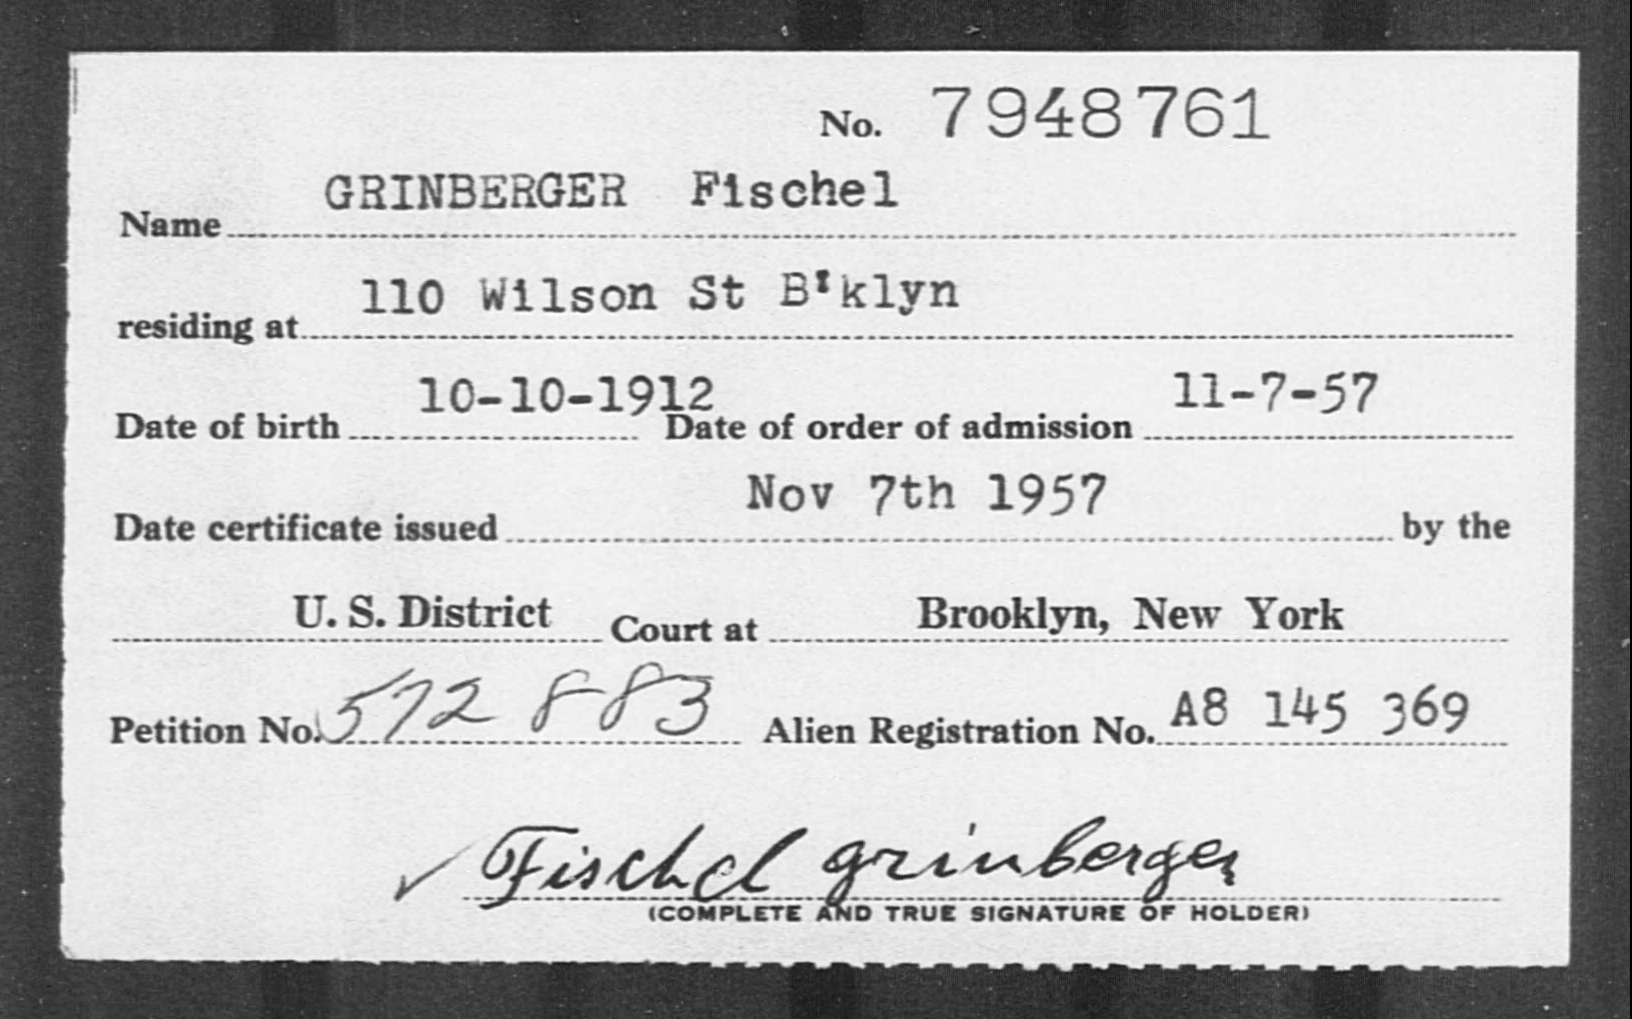 GRINBERGER Fischel - Born: 1912, Naturalized: 1957